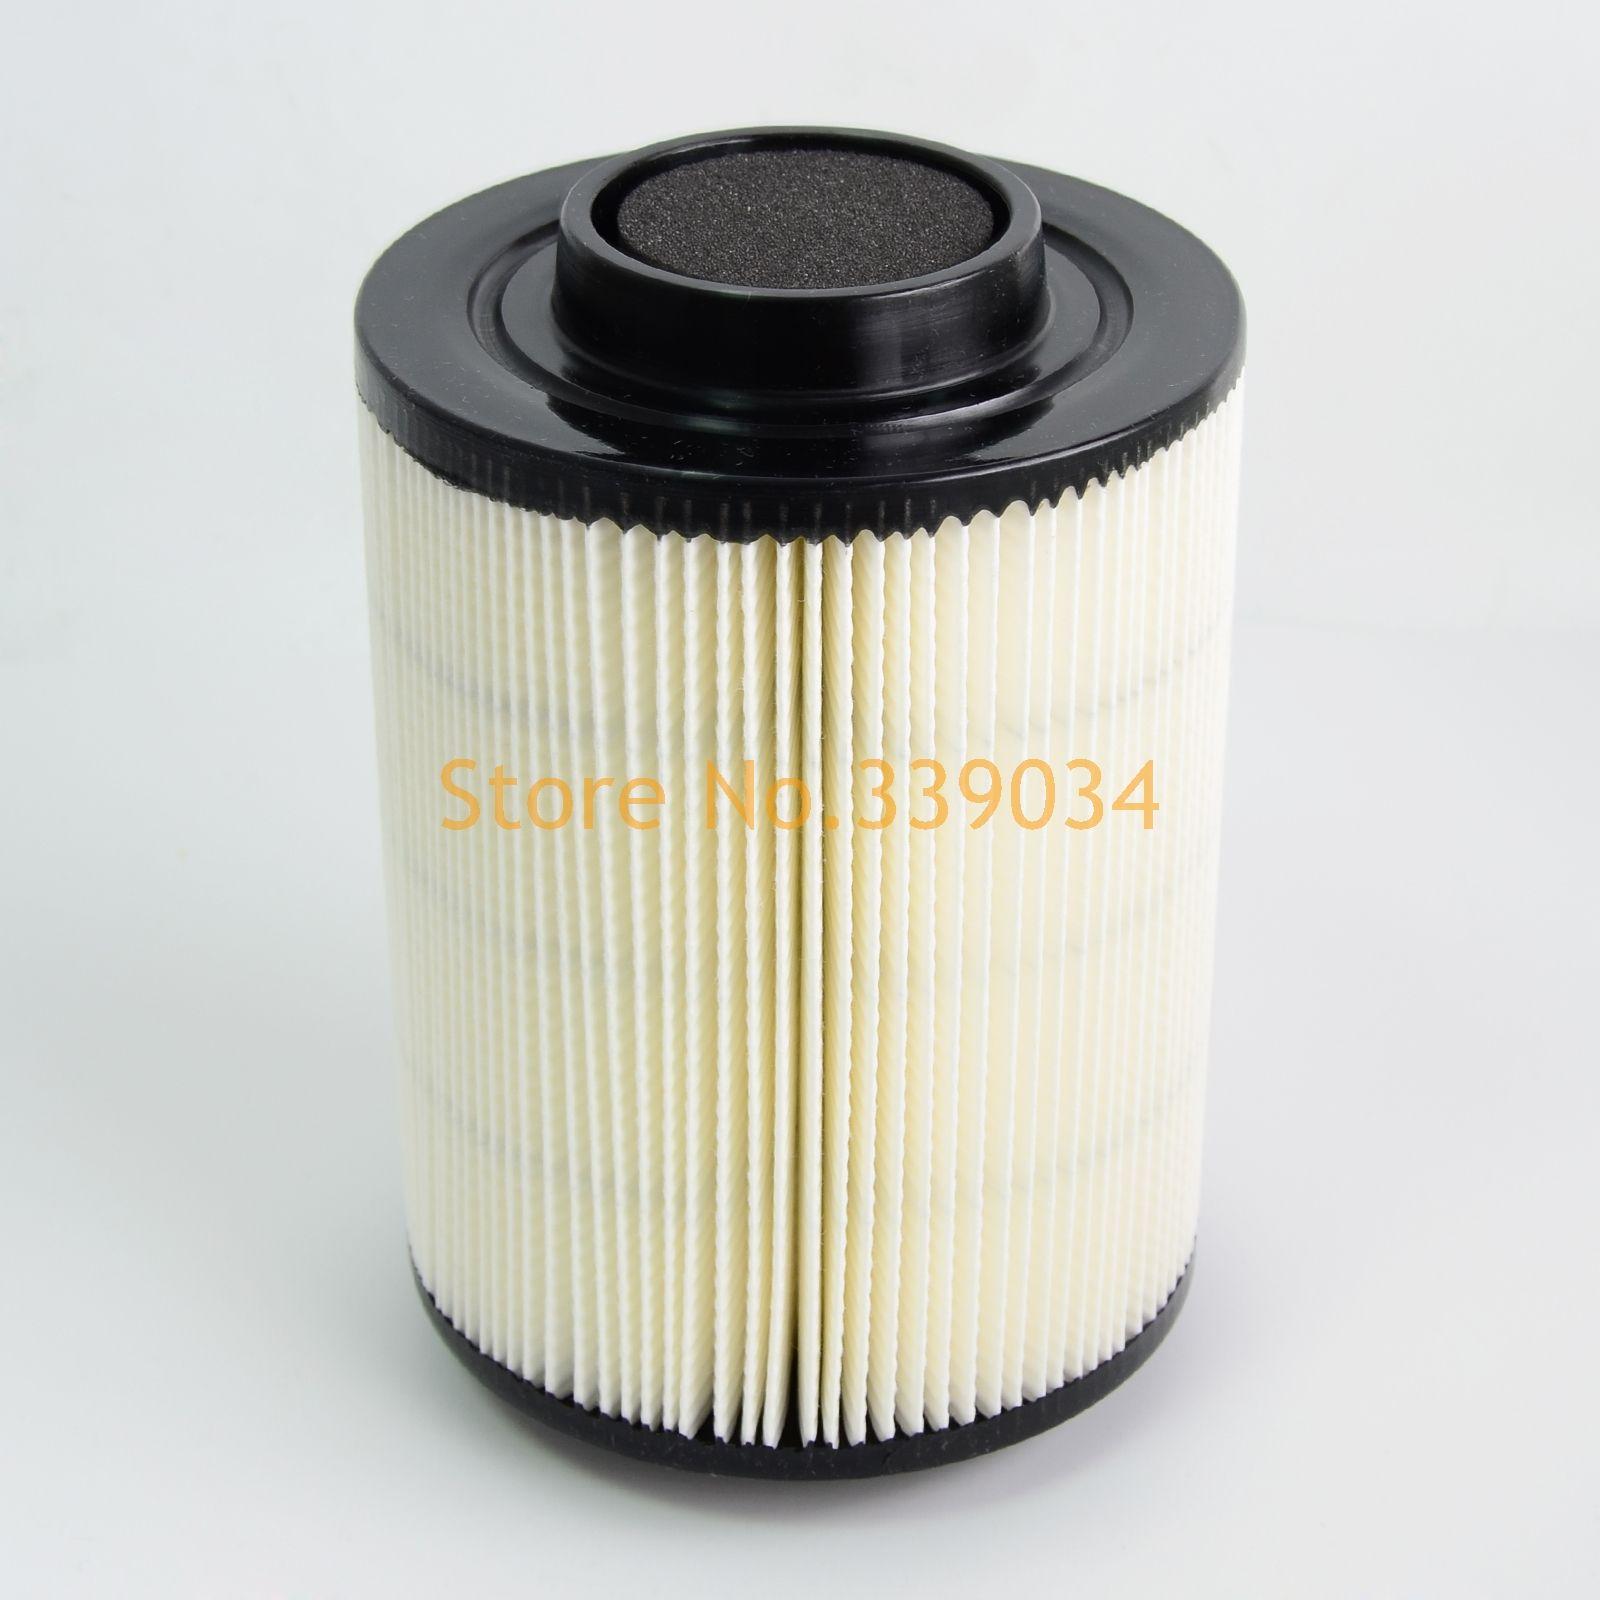 hight resolution of check discount motorcycle air filter cleaner for polaris ranger 800 rzr 4 rzr 800 le efi eps 2009 2011 polaris rzr 800